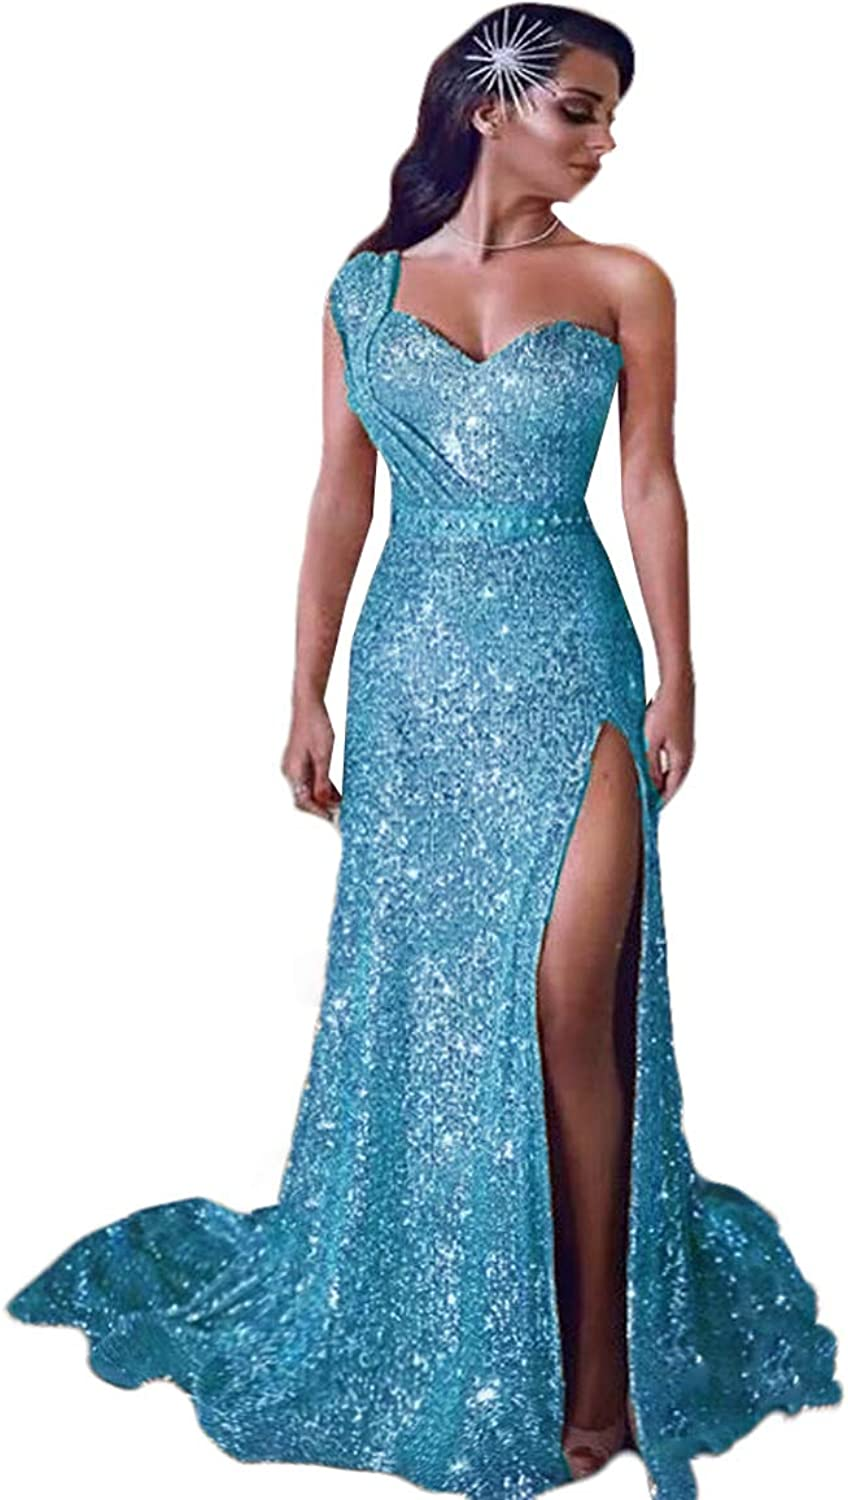 WZW 2019 One Shoulder Sequin Ruched Split Beaded Evening Party Gowns Plus Size Prom Dress